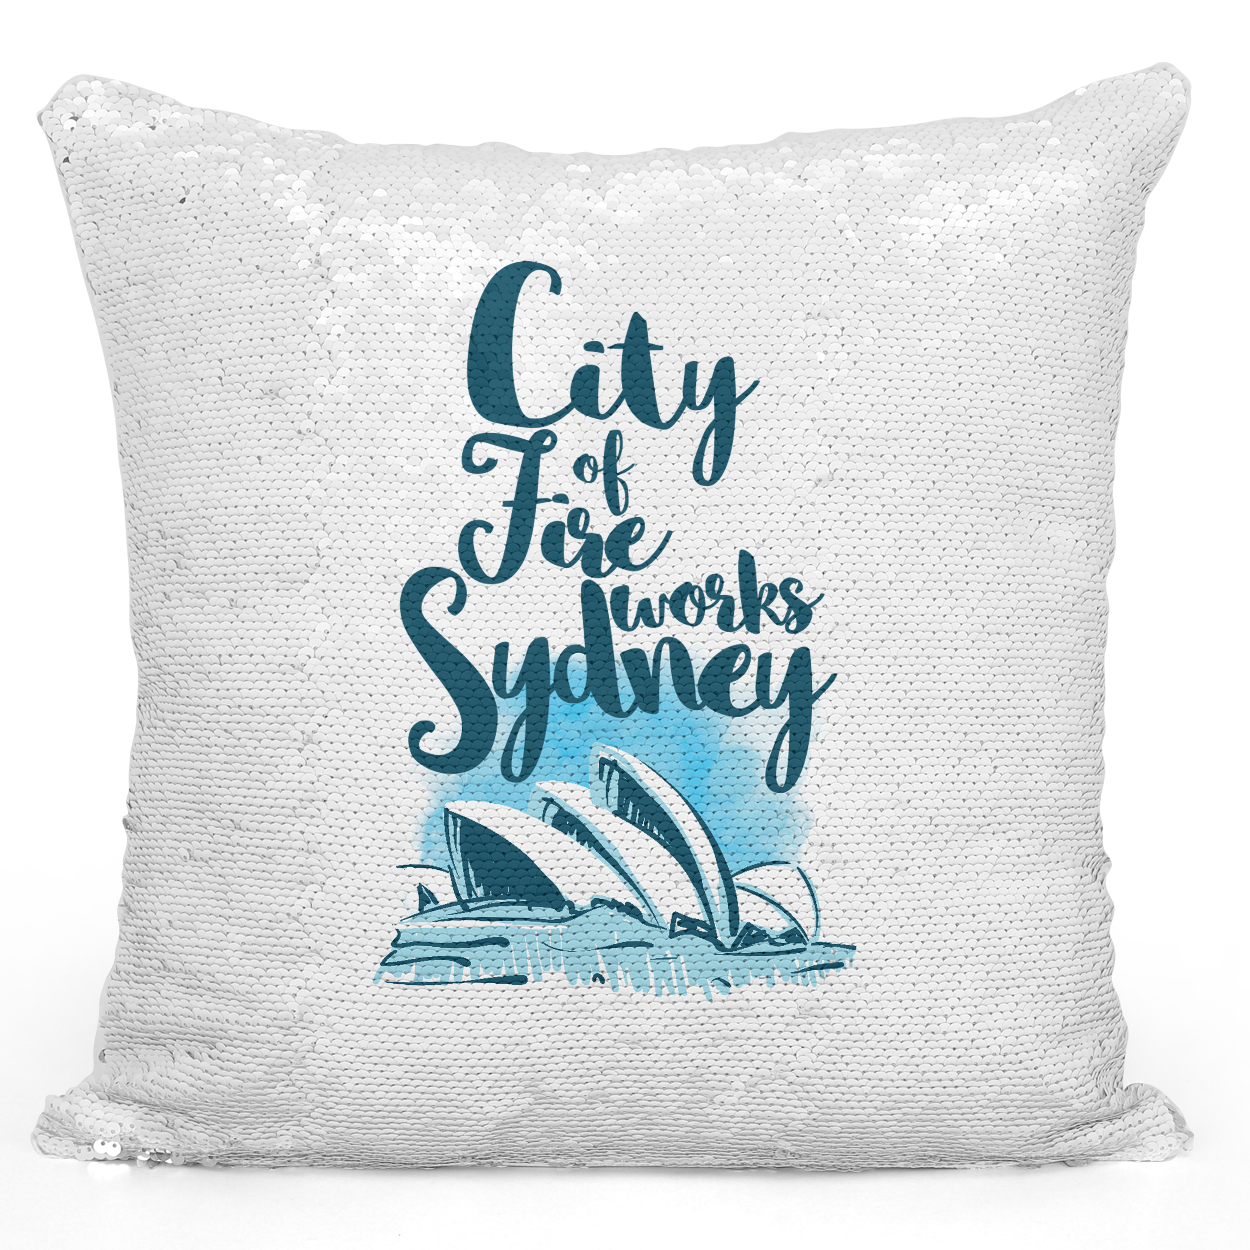 Sequin Pillow Magic Mermaid Throw Pillow Sydney Operah House Famous World Destination Vacation Pillow - Premium 100% Polyester 16 x 16 inch Square Modern Livingroom Decorative Pillow Loud Universe